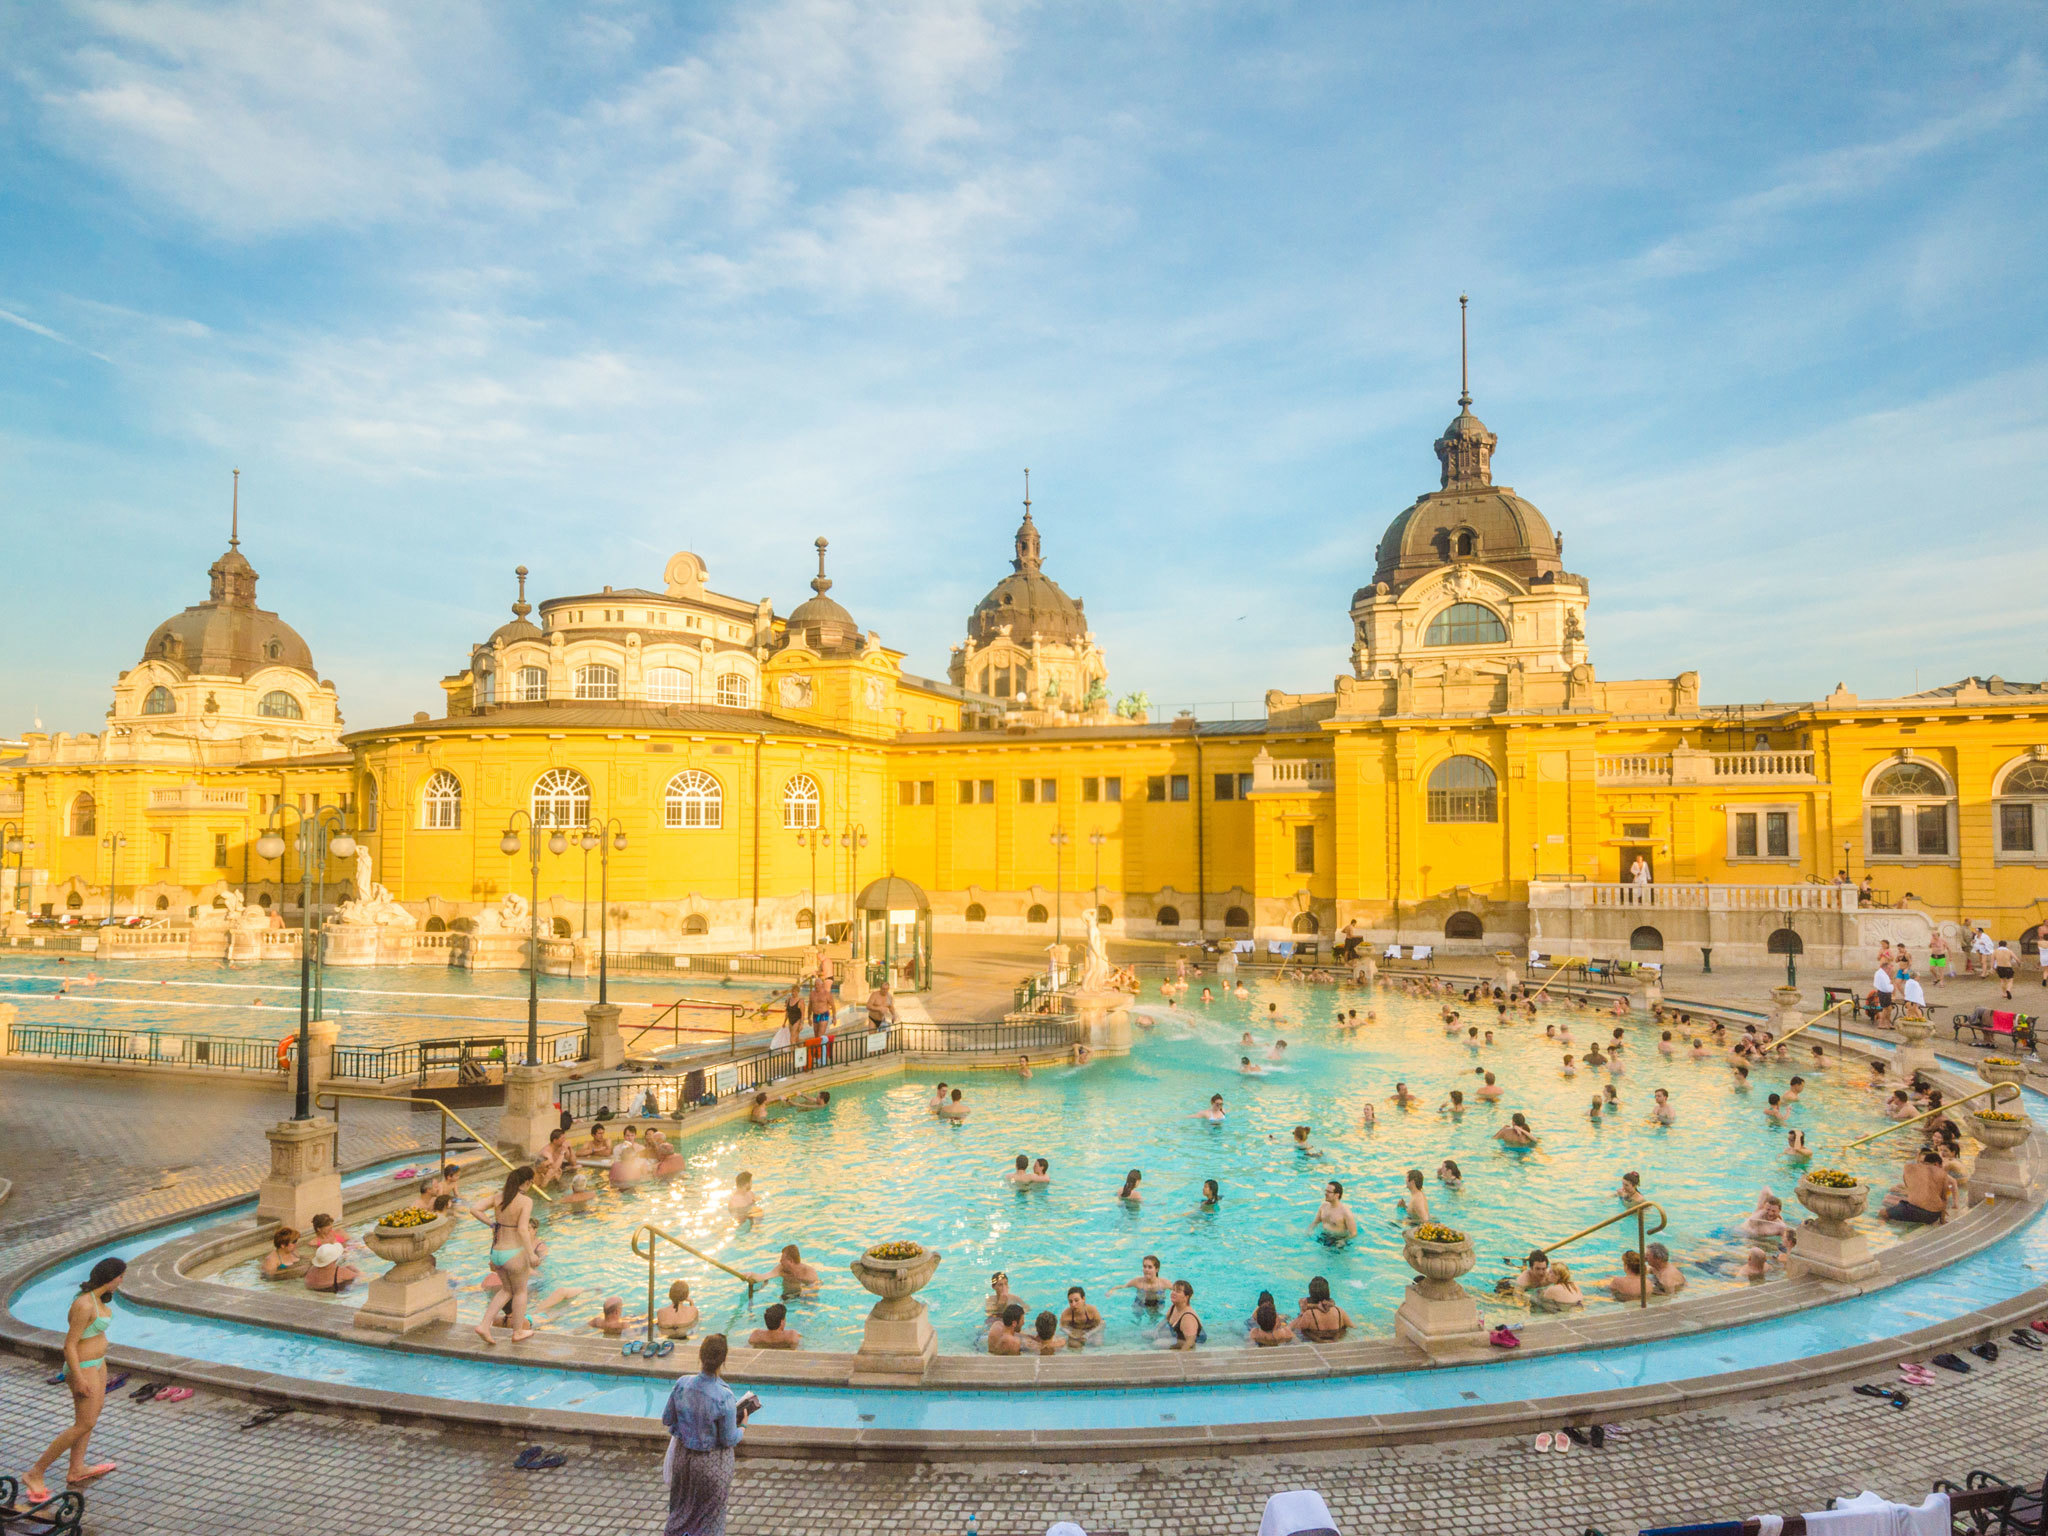 10 relaxing spas and thermal baths in Budapest